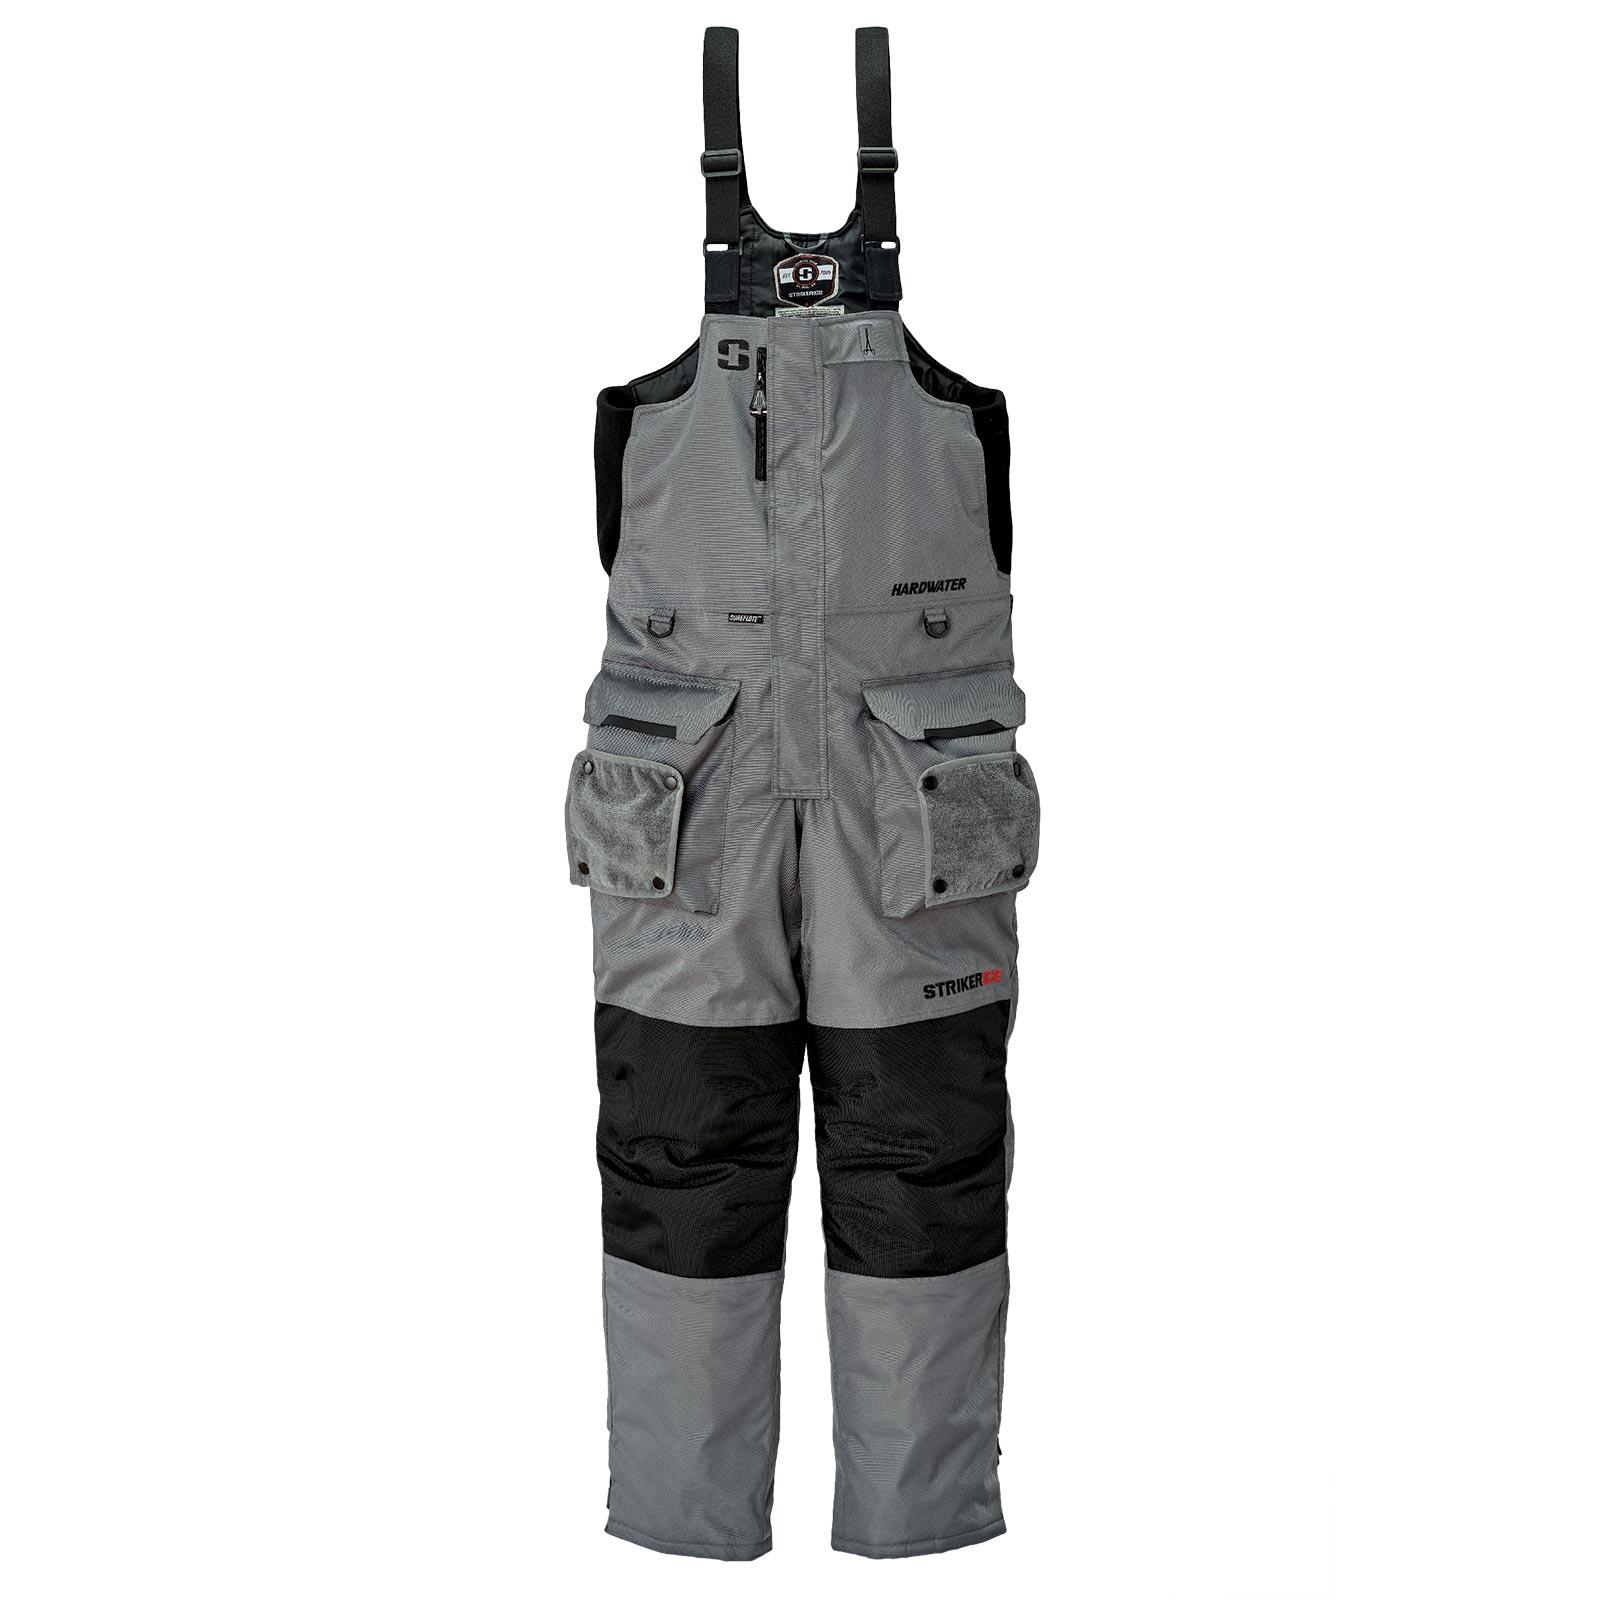 Striker Ice Men's Hardwater Bibs